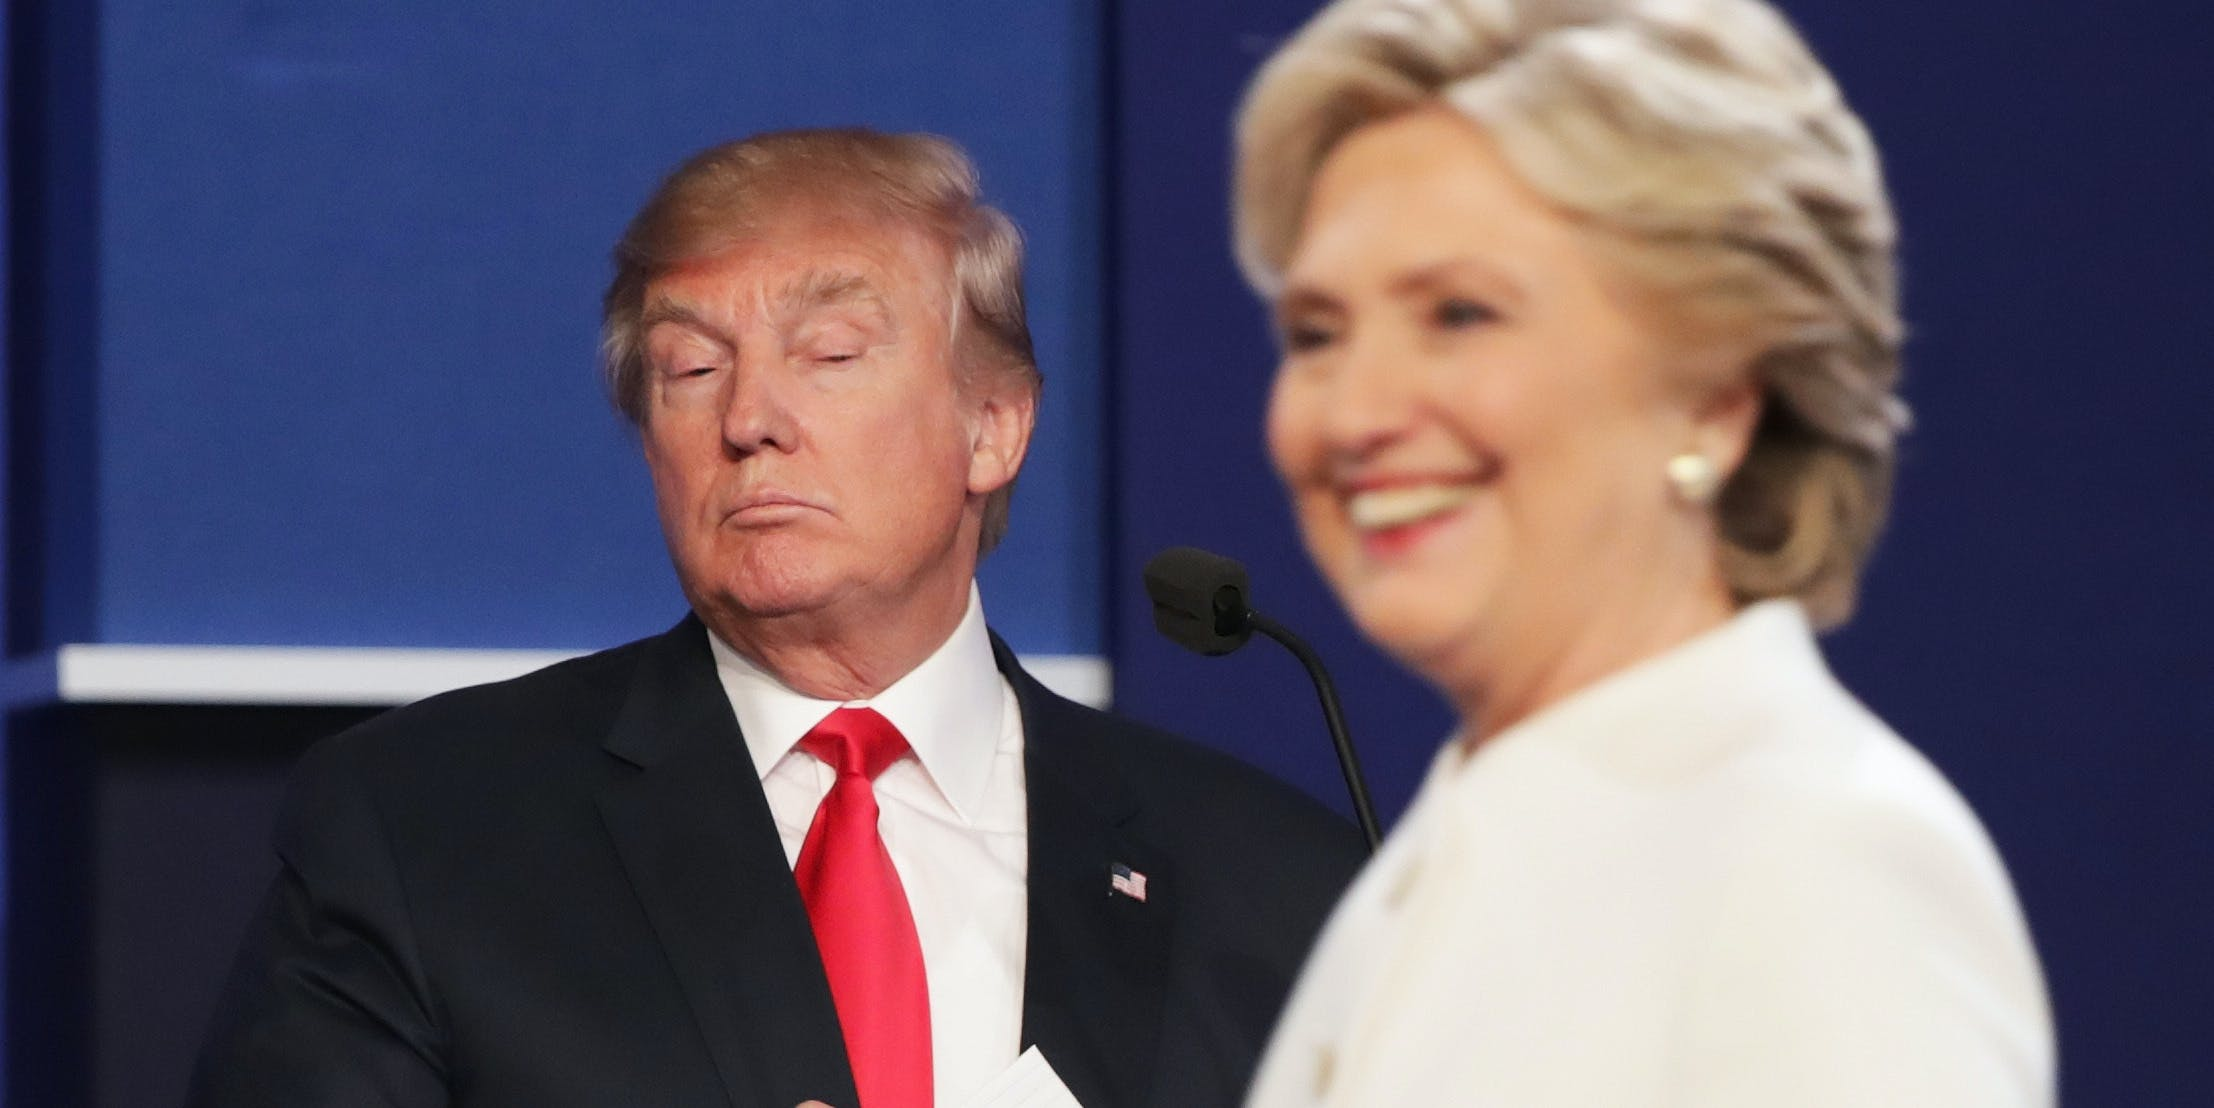 There are still ways that the 2016 presidential election can get crazier.